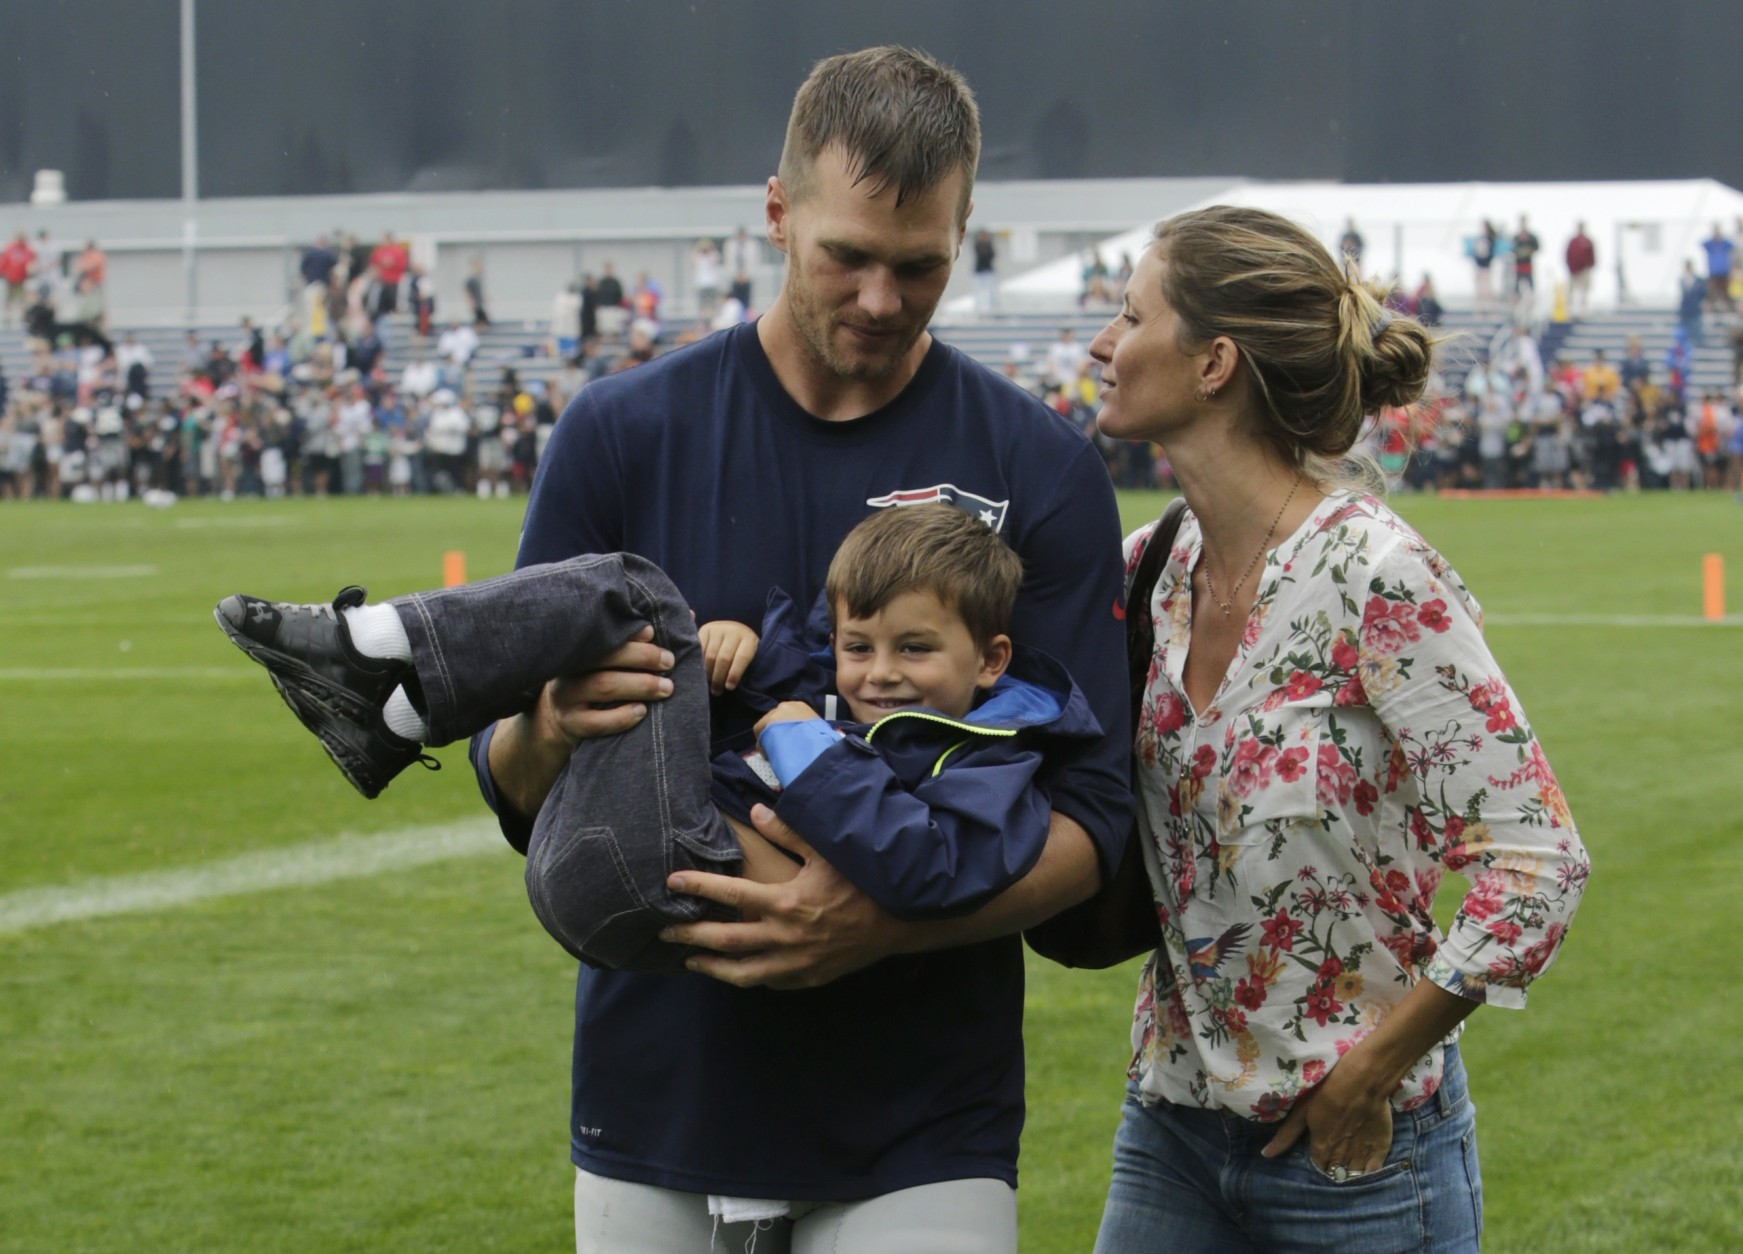 New England Patriots quarterback Tom Brady and his wife Gisele Bundchen with their son Benjamin Brady after a joint workout with the Tampa Bay Buccaneers at NFL football training camp, in Foxborough, Mass., Tuesday, Aug. 13, 2013. (AP Photo/Charles Krupa)